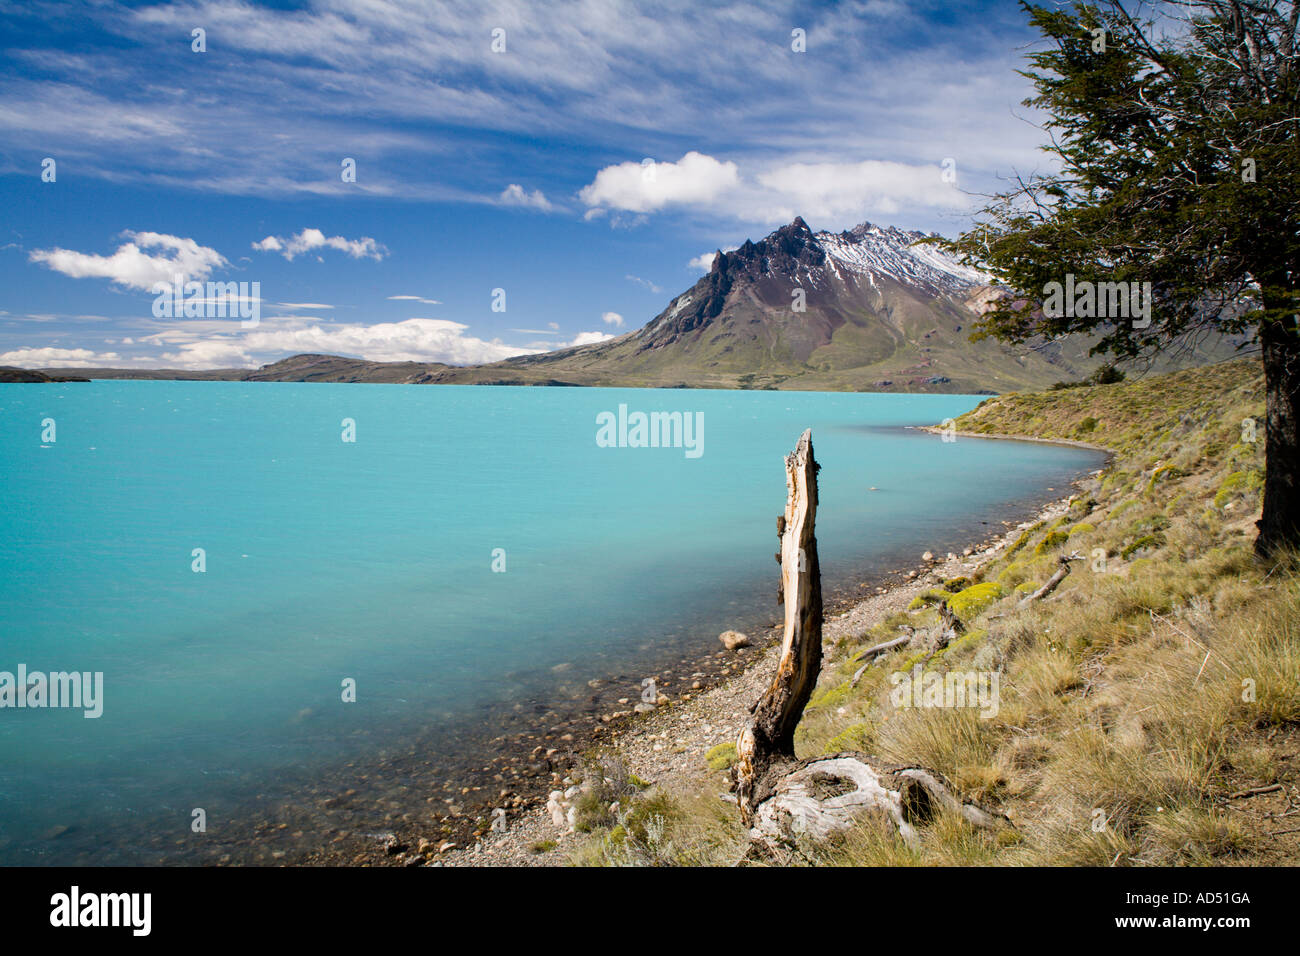 Tree stump lake belgrano Cerro Mie - Stock Image